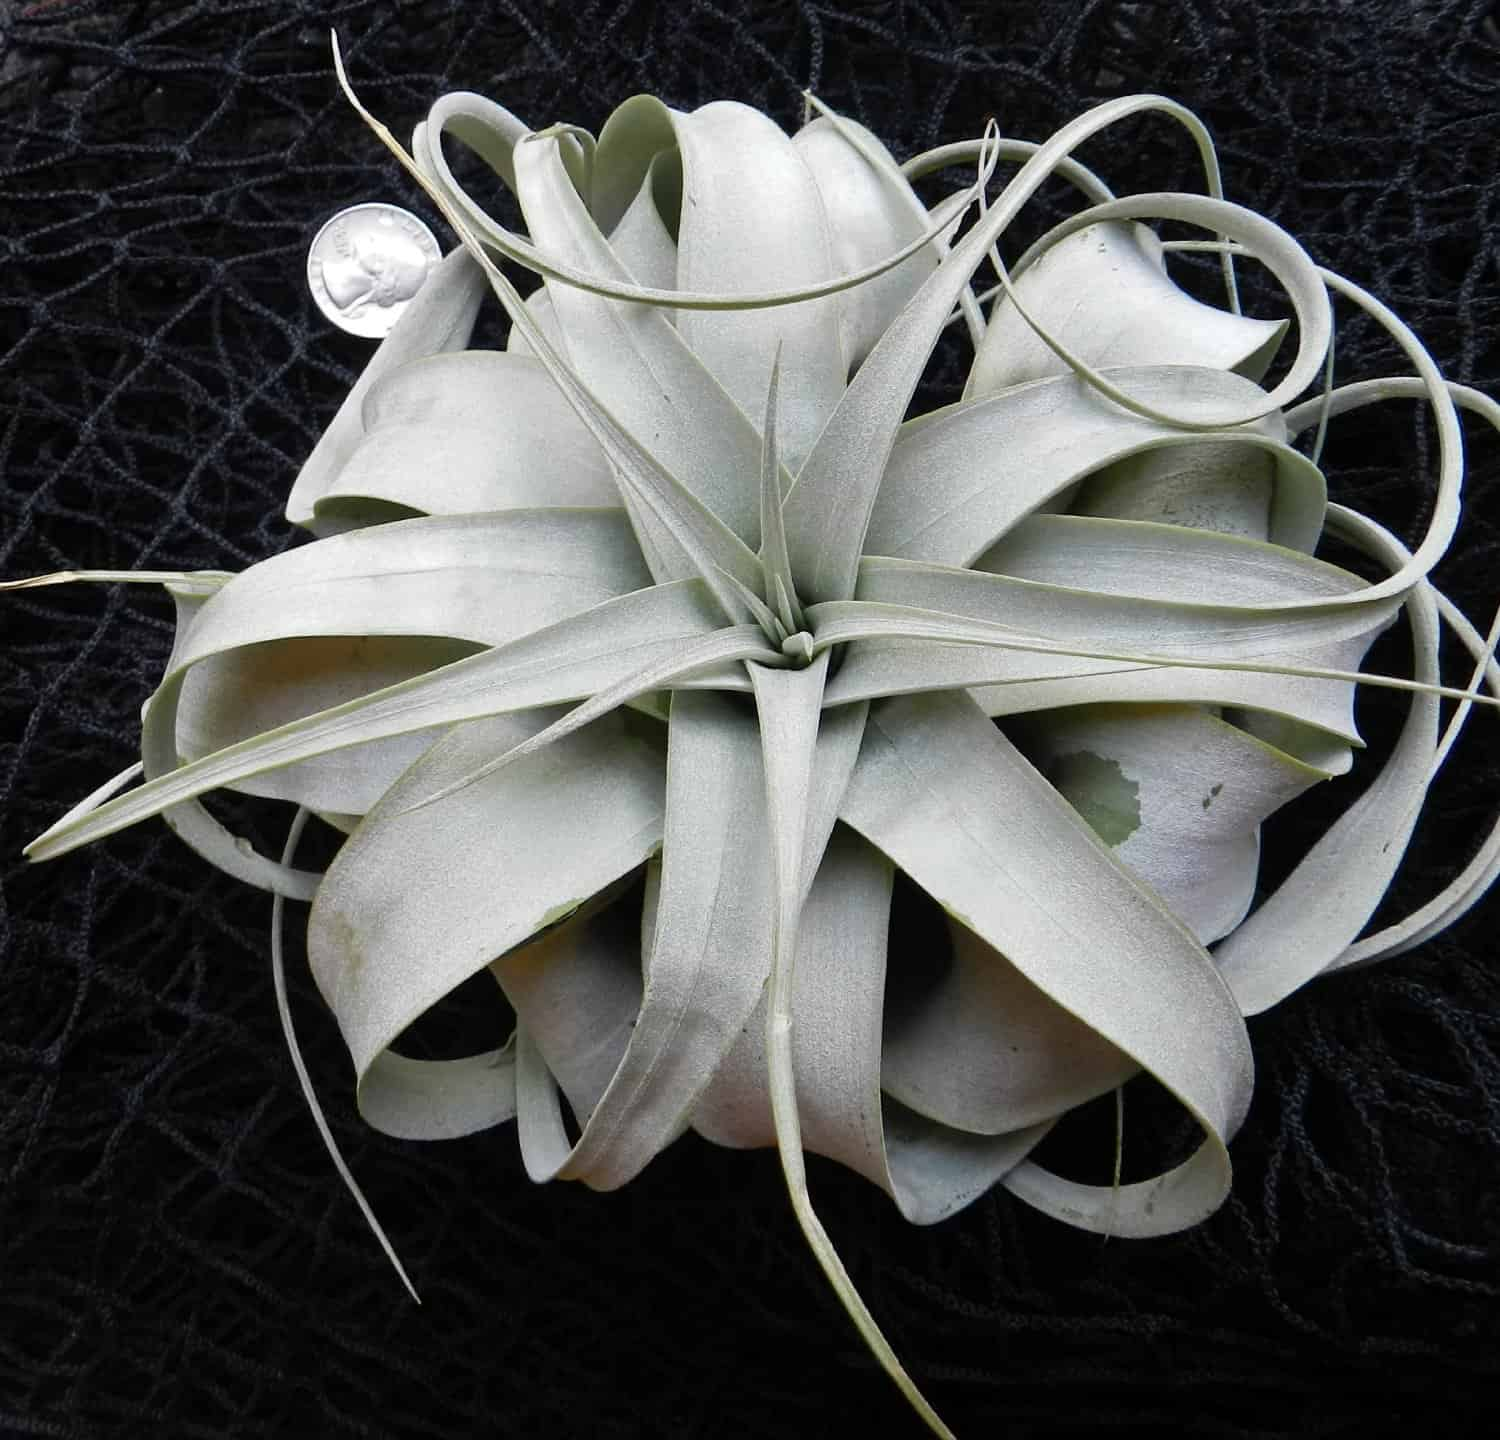 Hinterland Trading Air Plant Tillandsia Xerographica Unique Gift Idea for Her